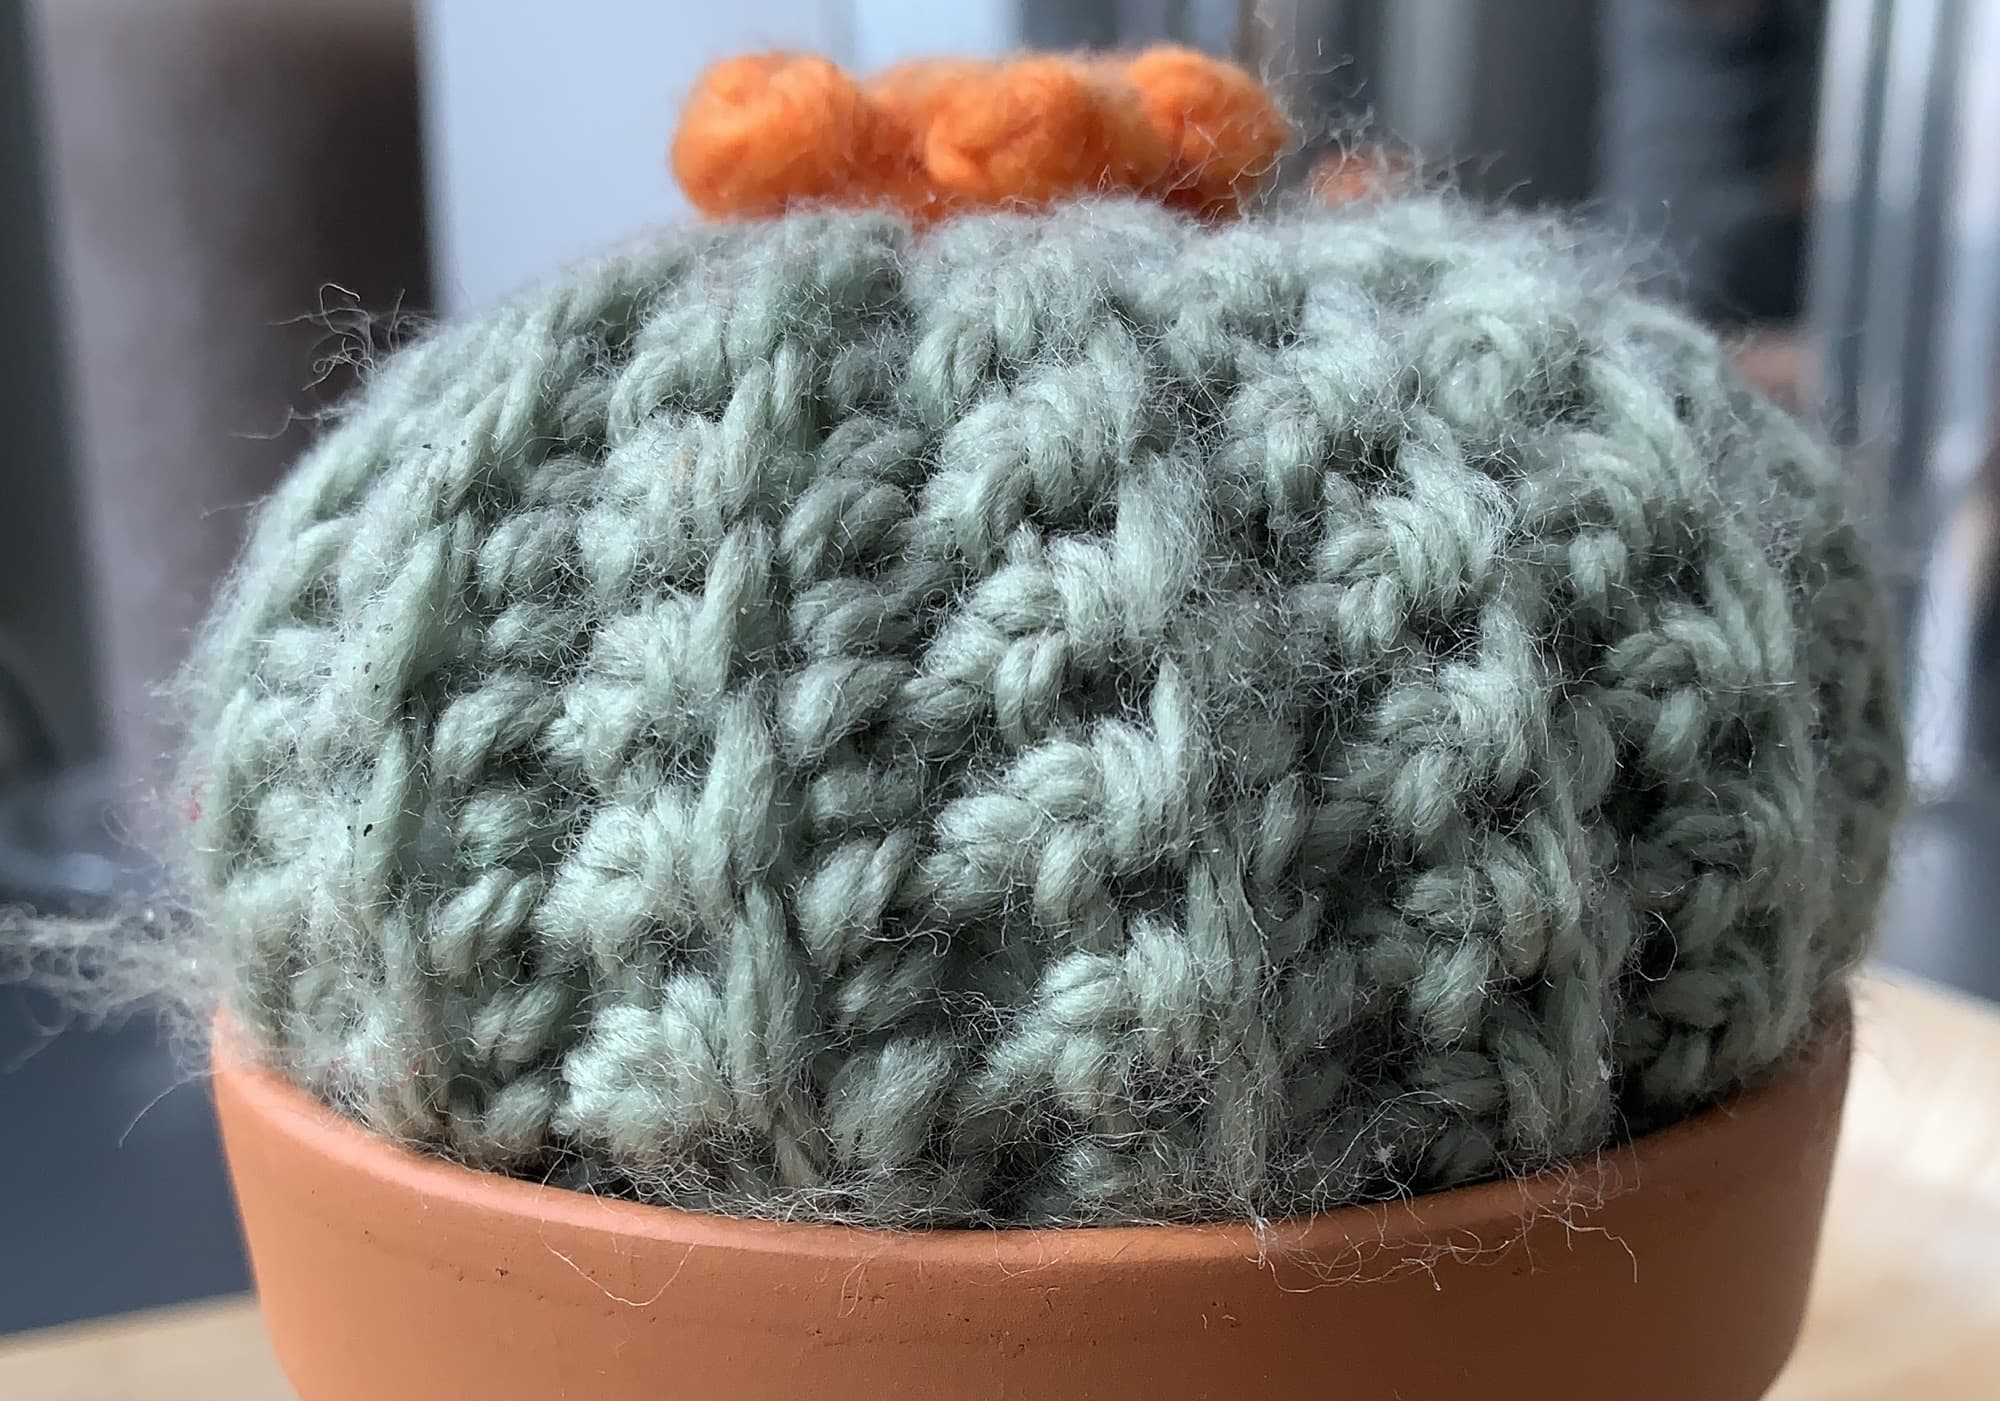 A crocheted cactus.